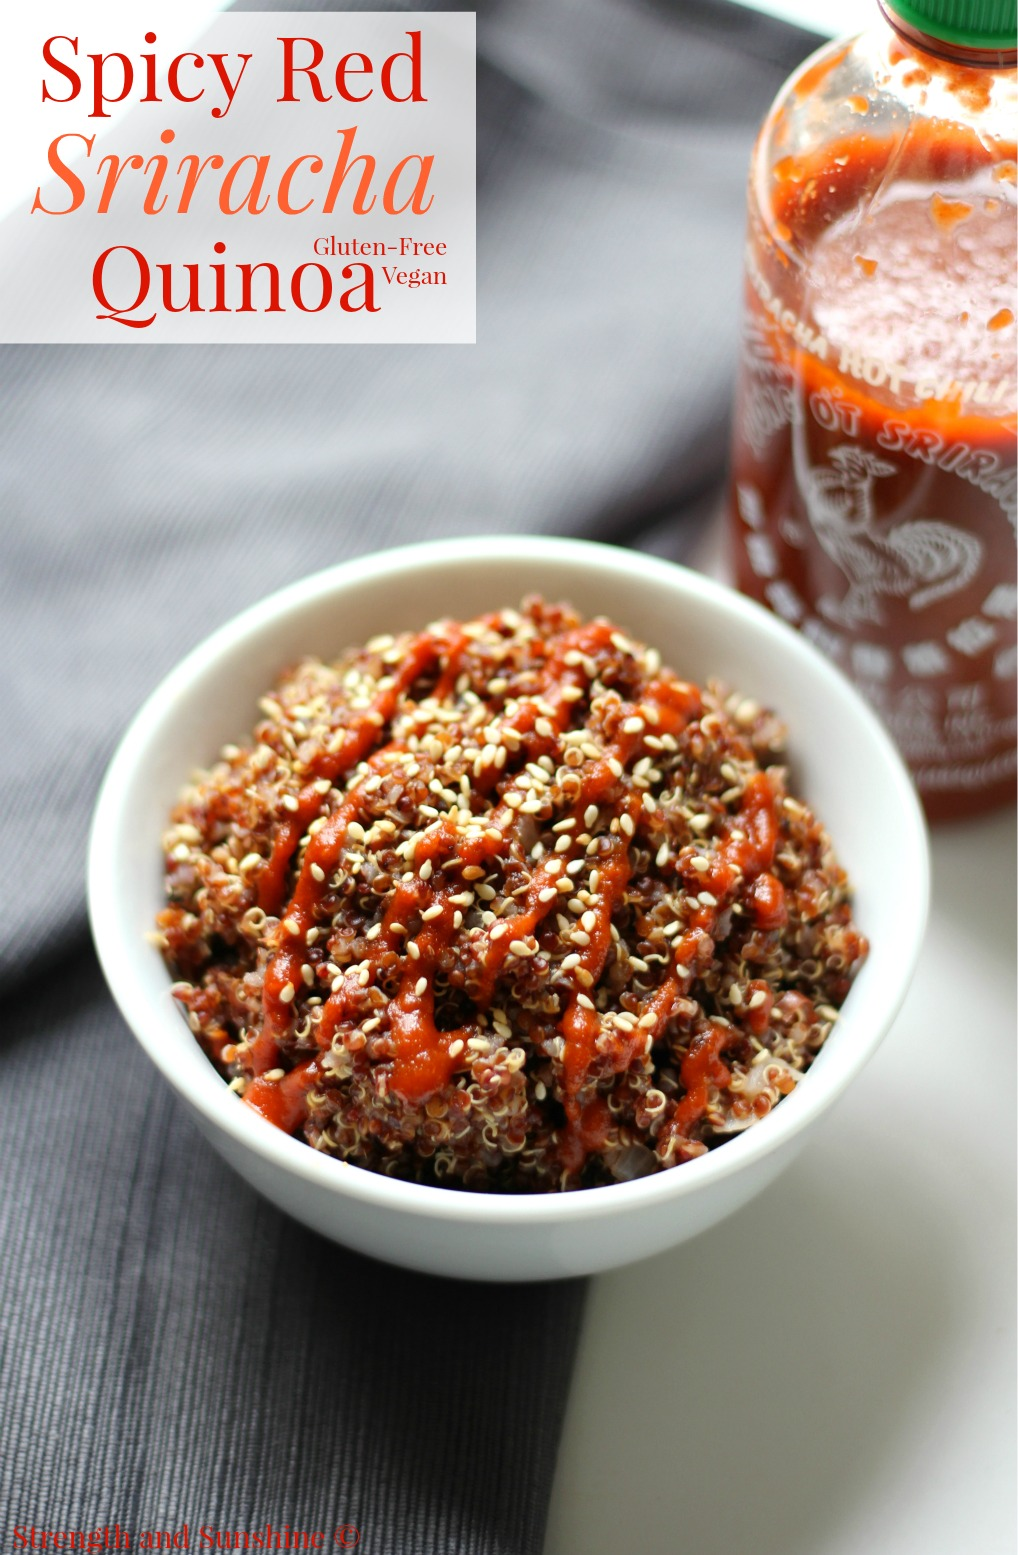 Spicy Red Sriracha Quinoa | Strength and Sunshine @RebeccaGF666 It's gettin' hot in here! Fiery and hot, spicy red sriracha quinoa is not for the faint of heart! The perfect taste bud poppin' Asian side dish recipe to please all of your spicy loving gluten-free and vegan friends! #VillageHarvestInspired [ad]